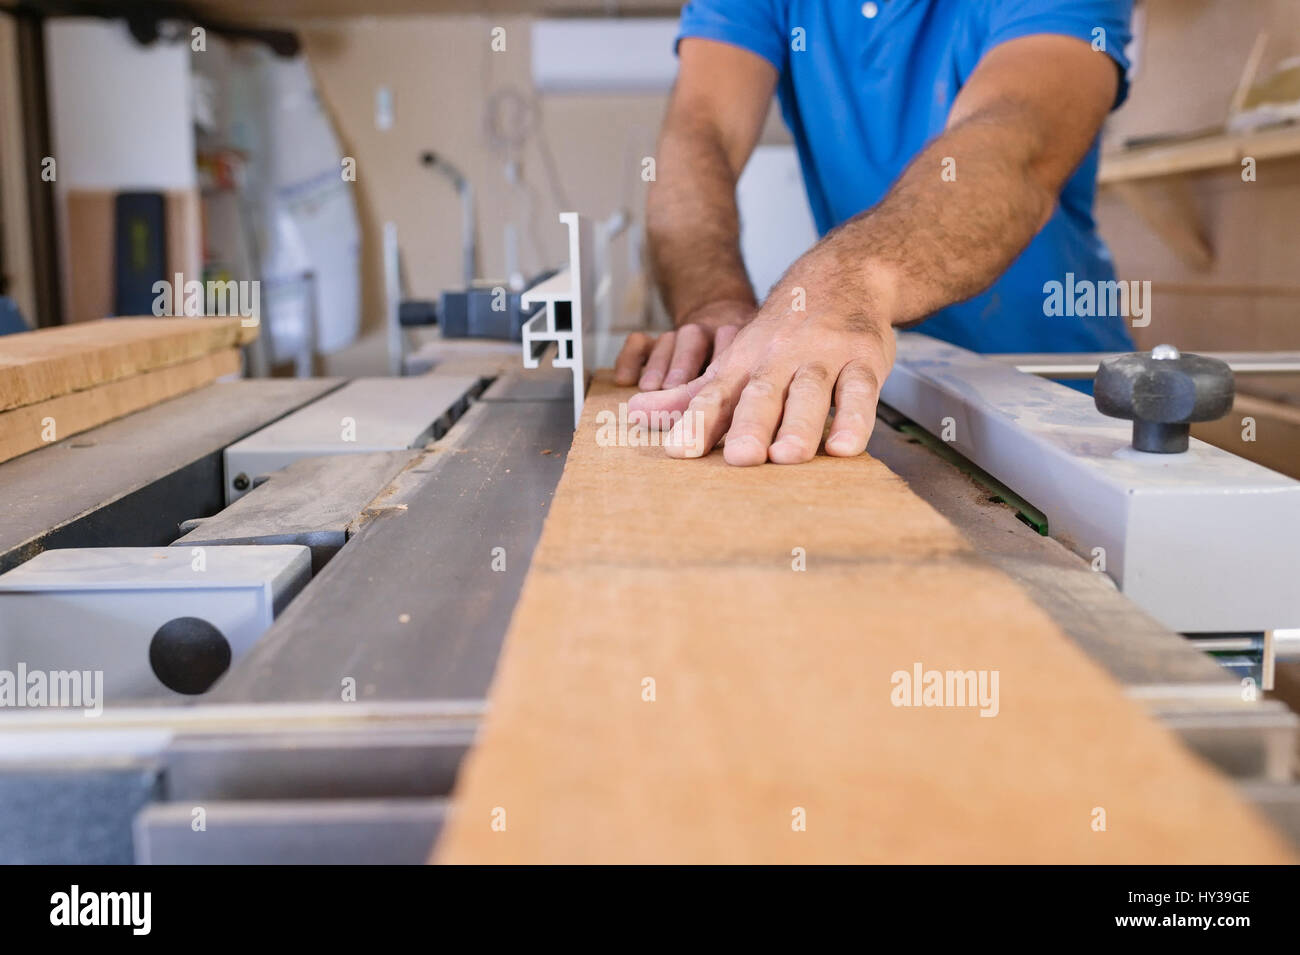 Sweden, Carpenter working with wood - Stock Image